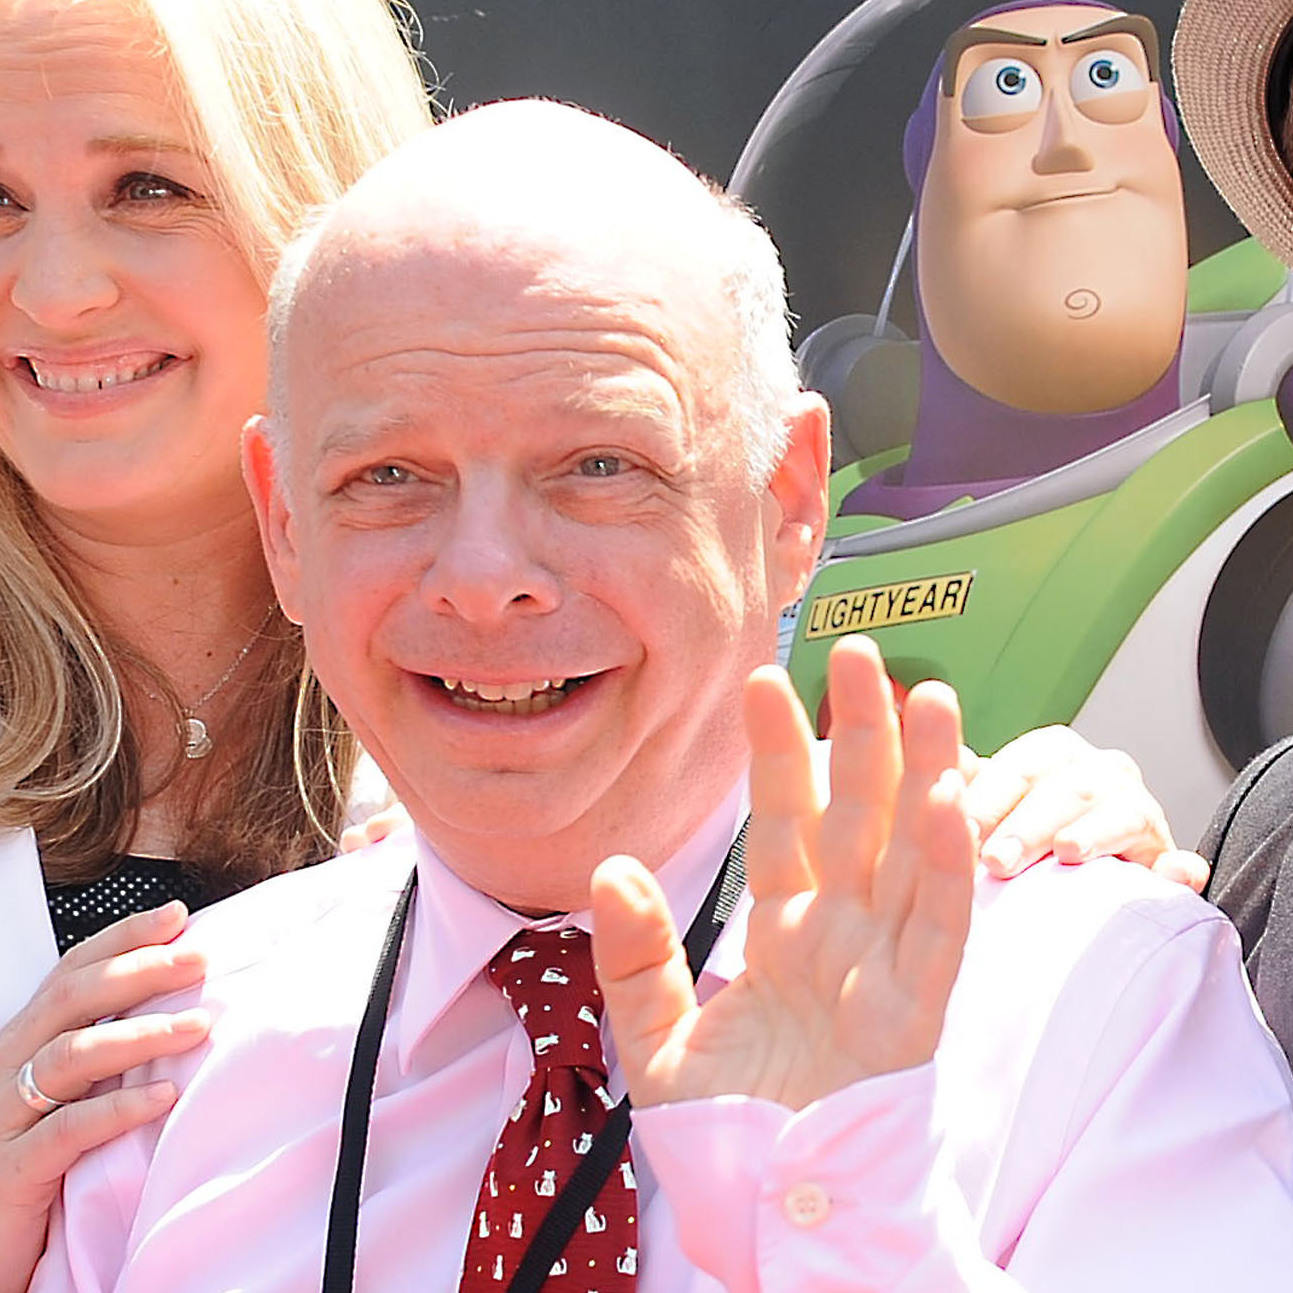 Wallace Shawn has also lent his voice and acting talents to more comic films, such as the Toy Story series and The Princess Bride.